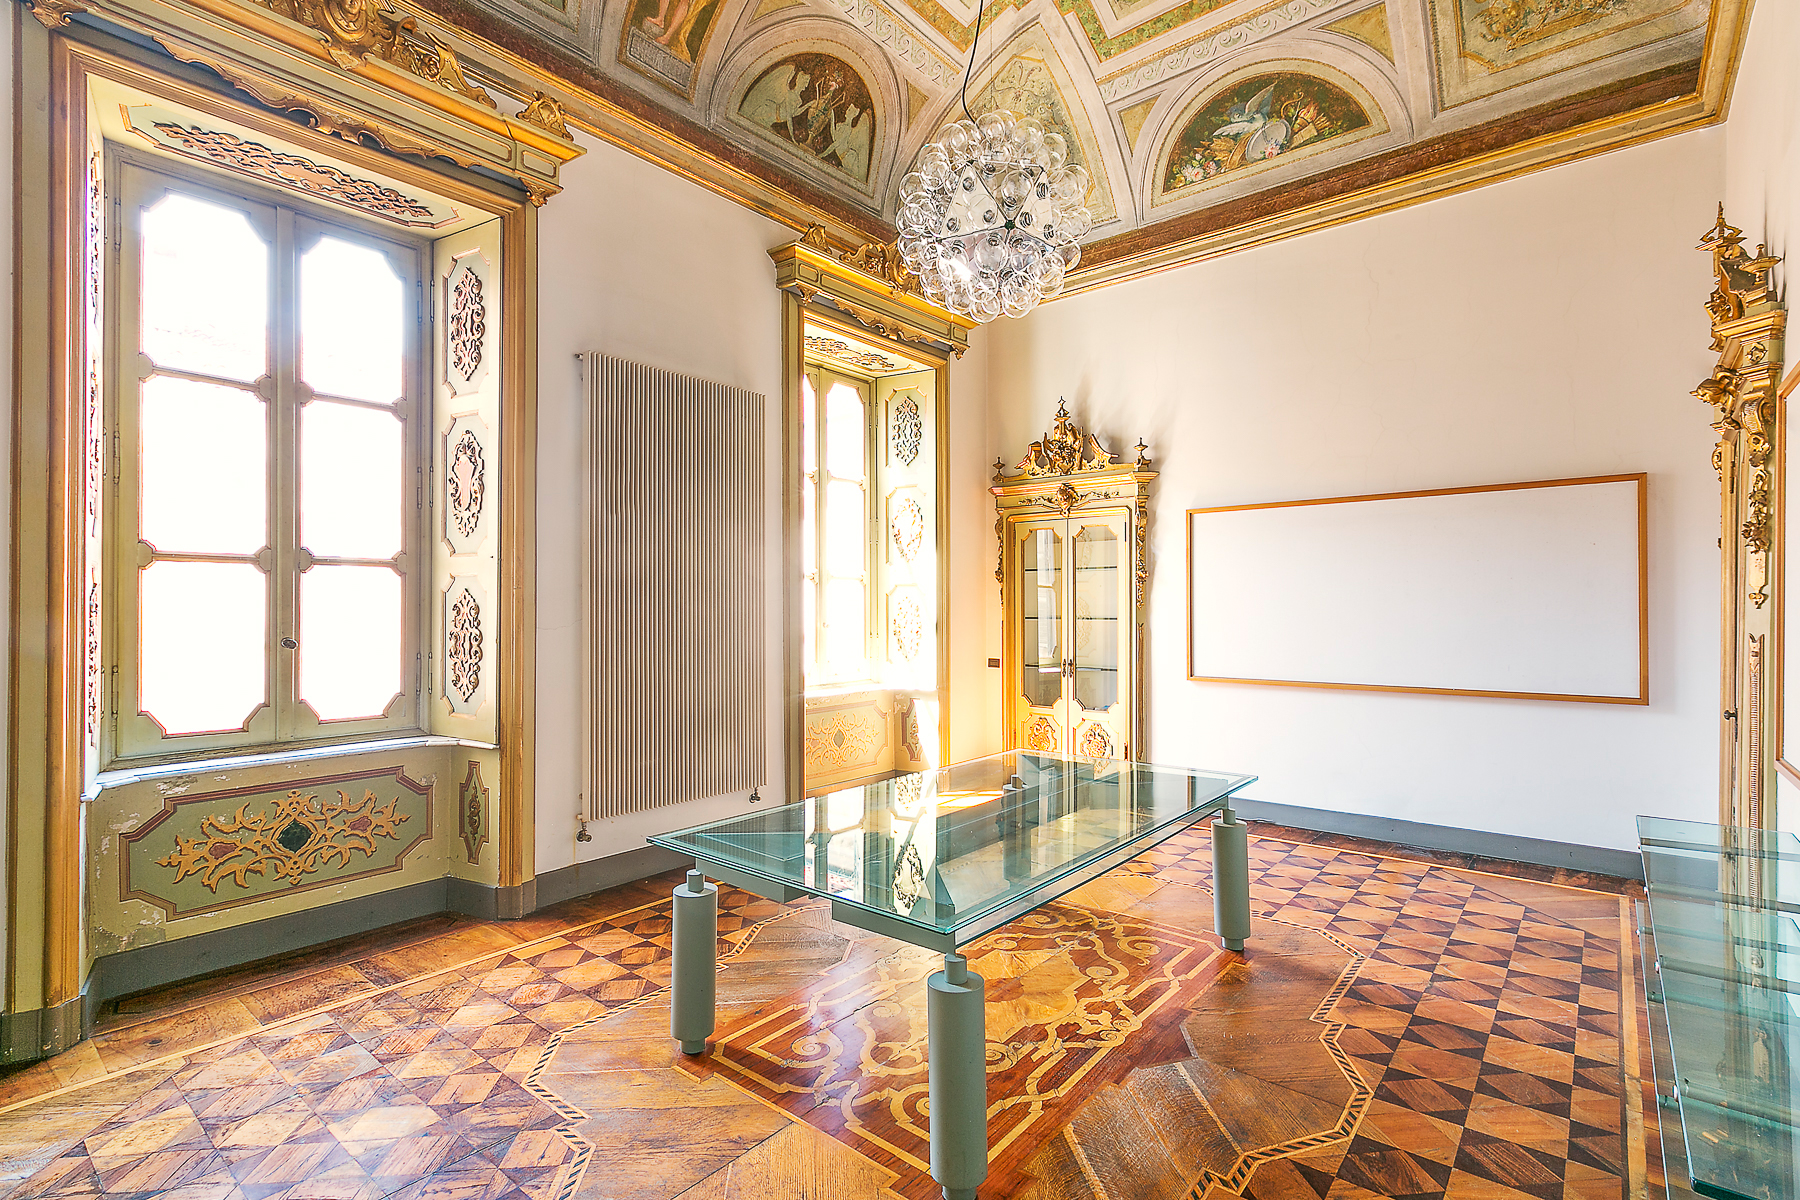 Apartamento por un Venta en Exquisite office in the center of Novara Via Negroni Novara, Novara 28100 Italia